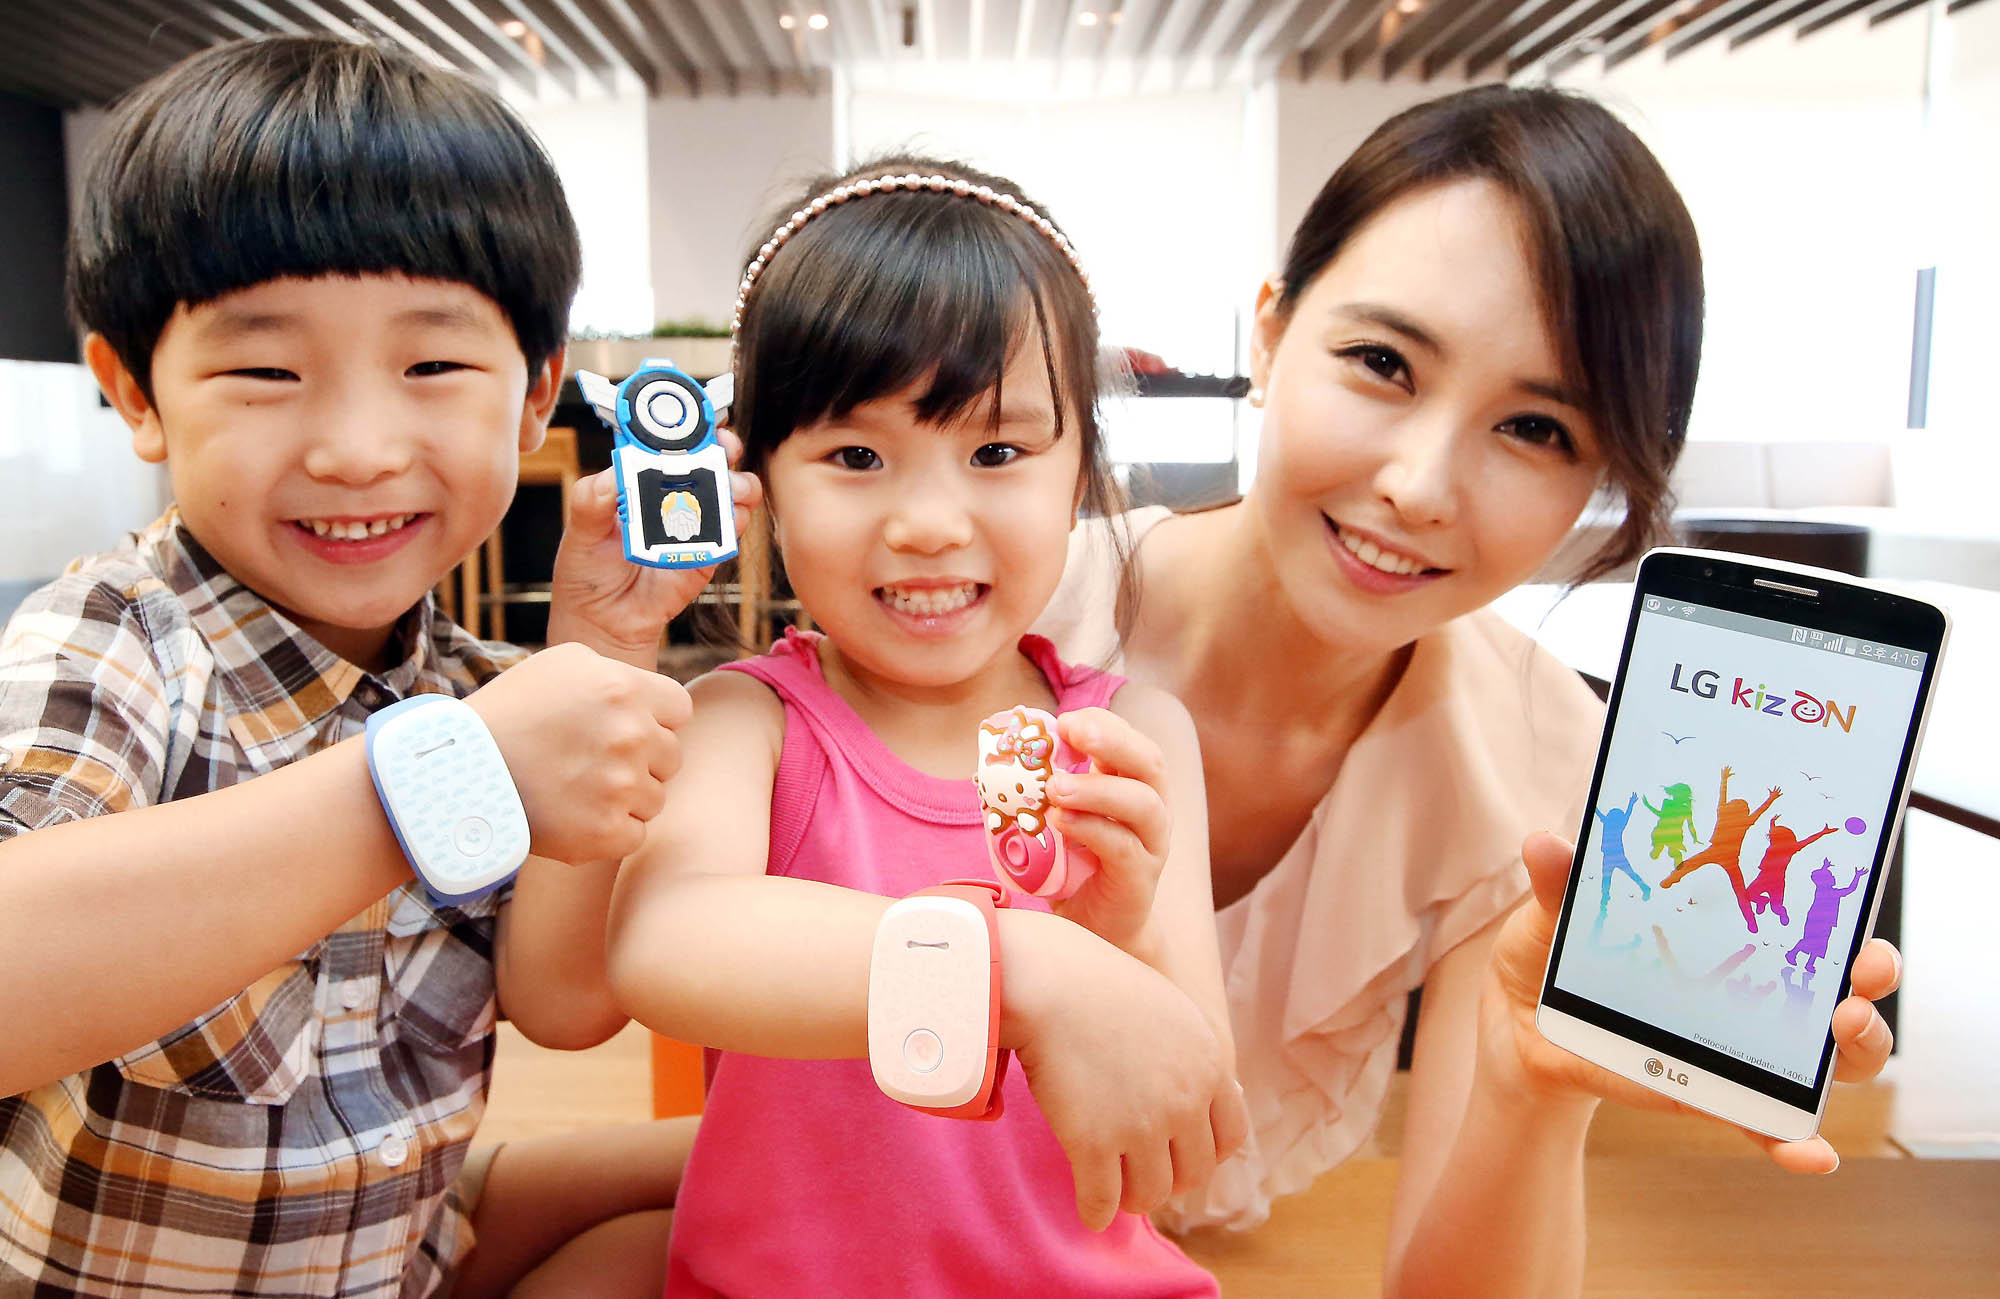 LG Jumps Into Wearables for Kids With KizON Wristband